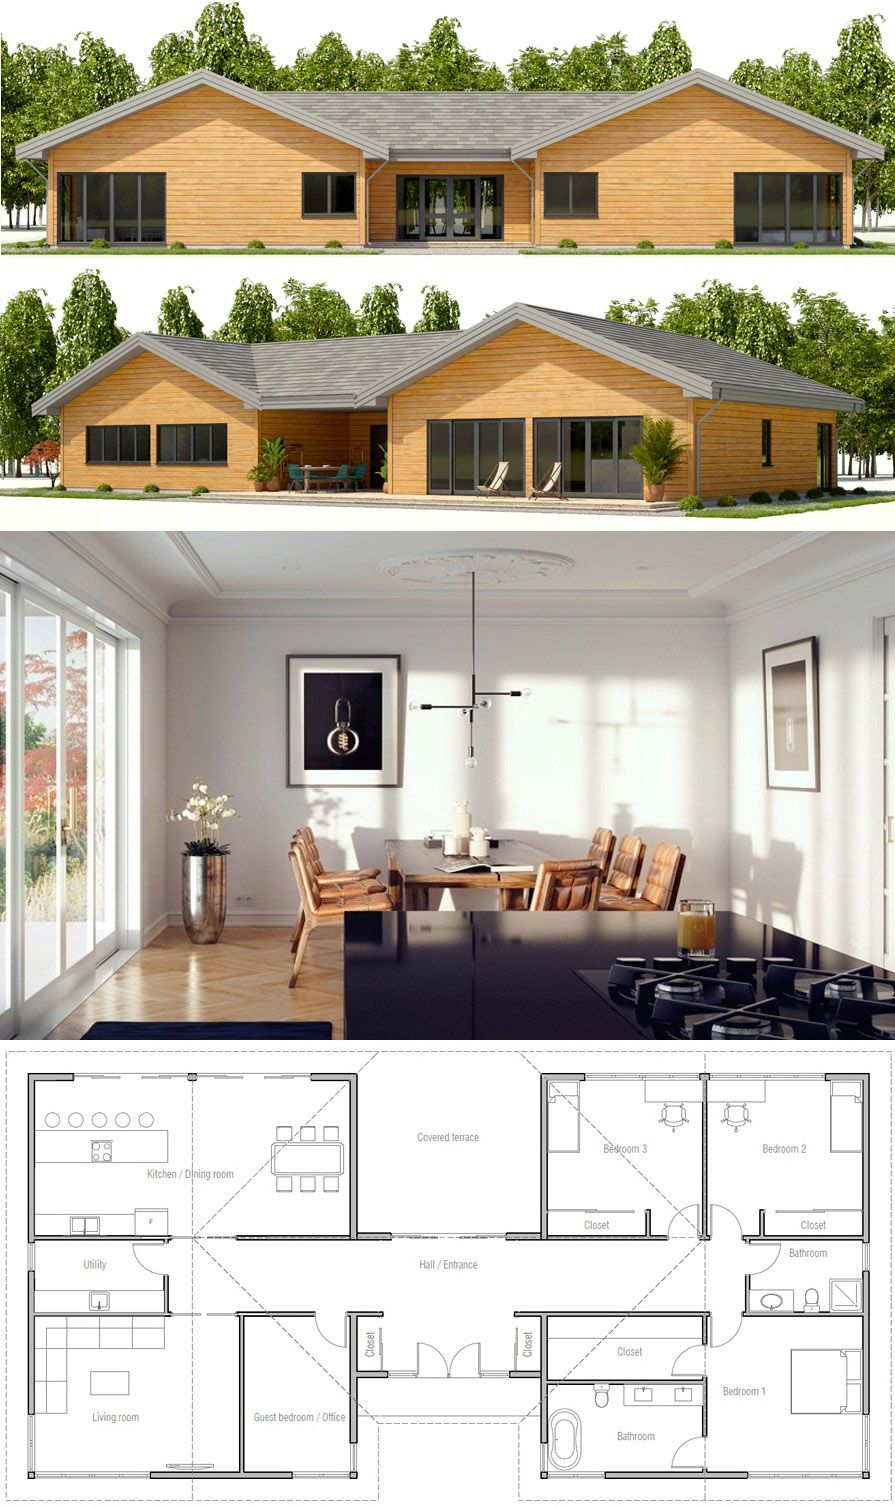 House Designs Housdesign Housedesigns Homedecor Newhome Small Modern House Plans Rancher House Plans New House Plans